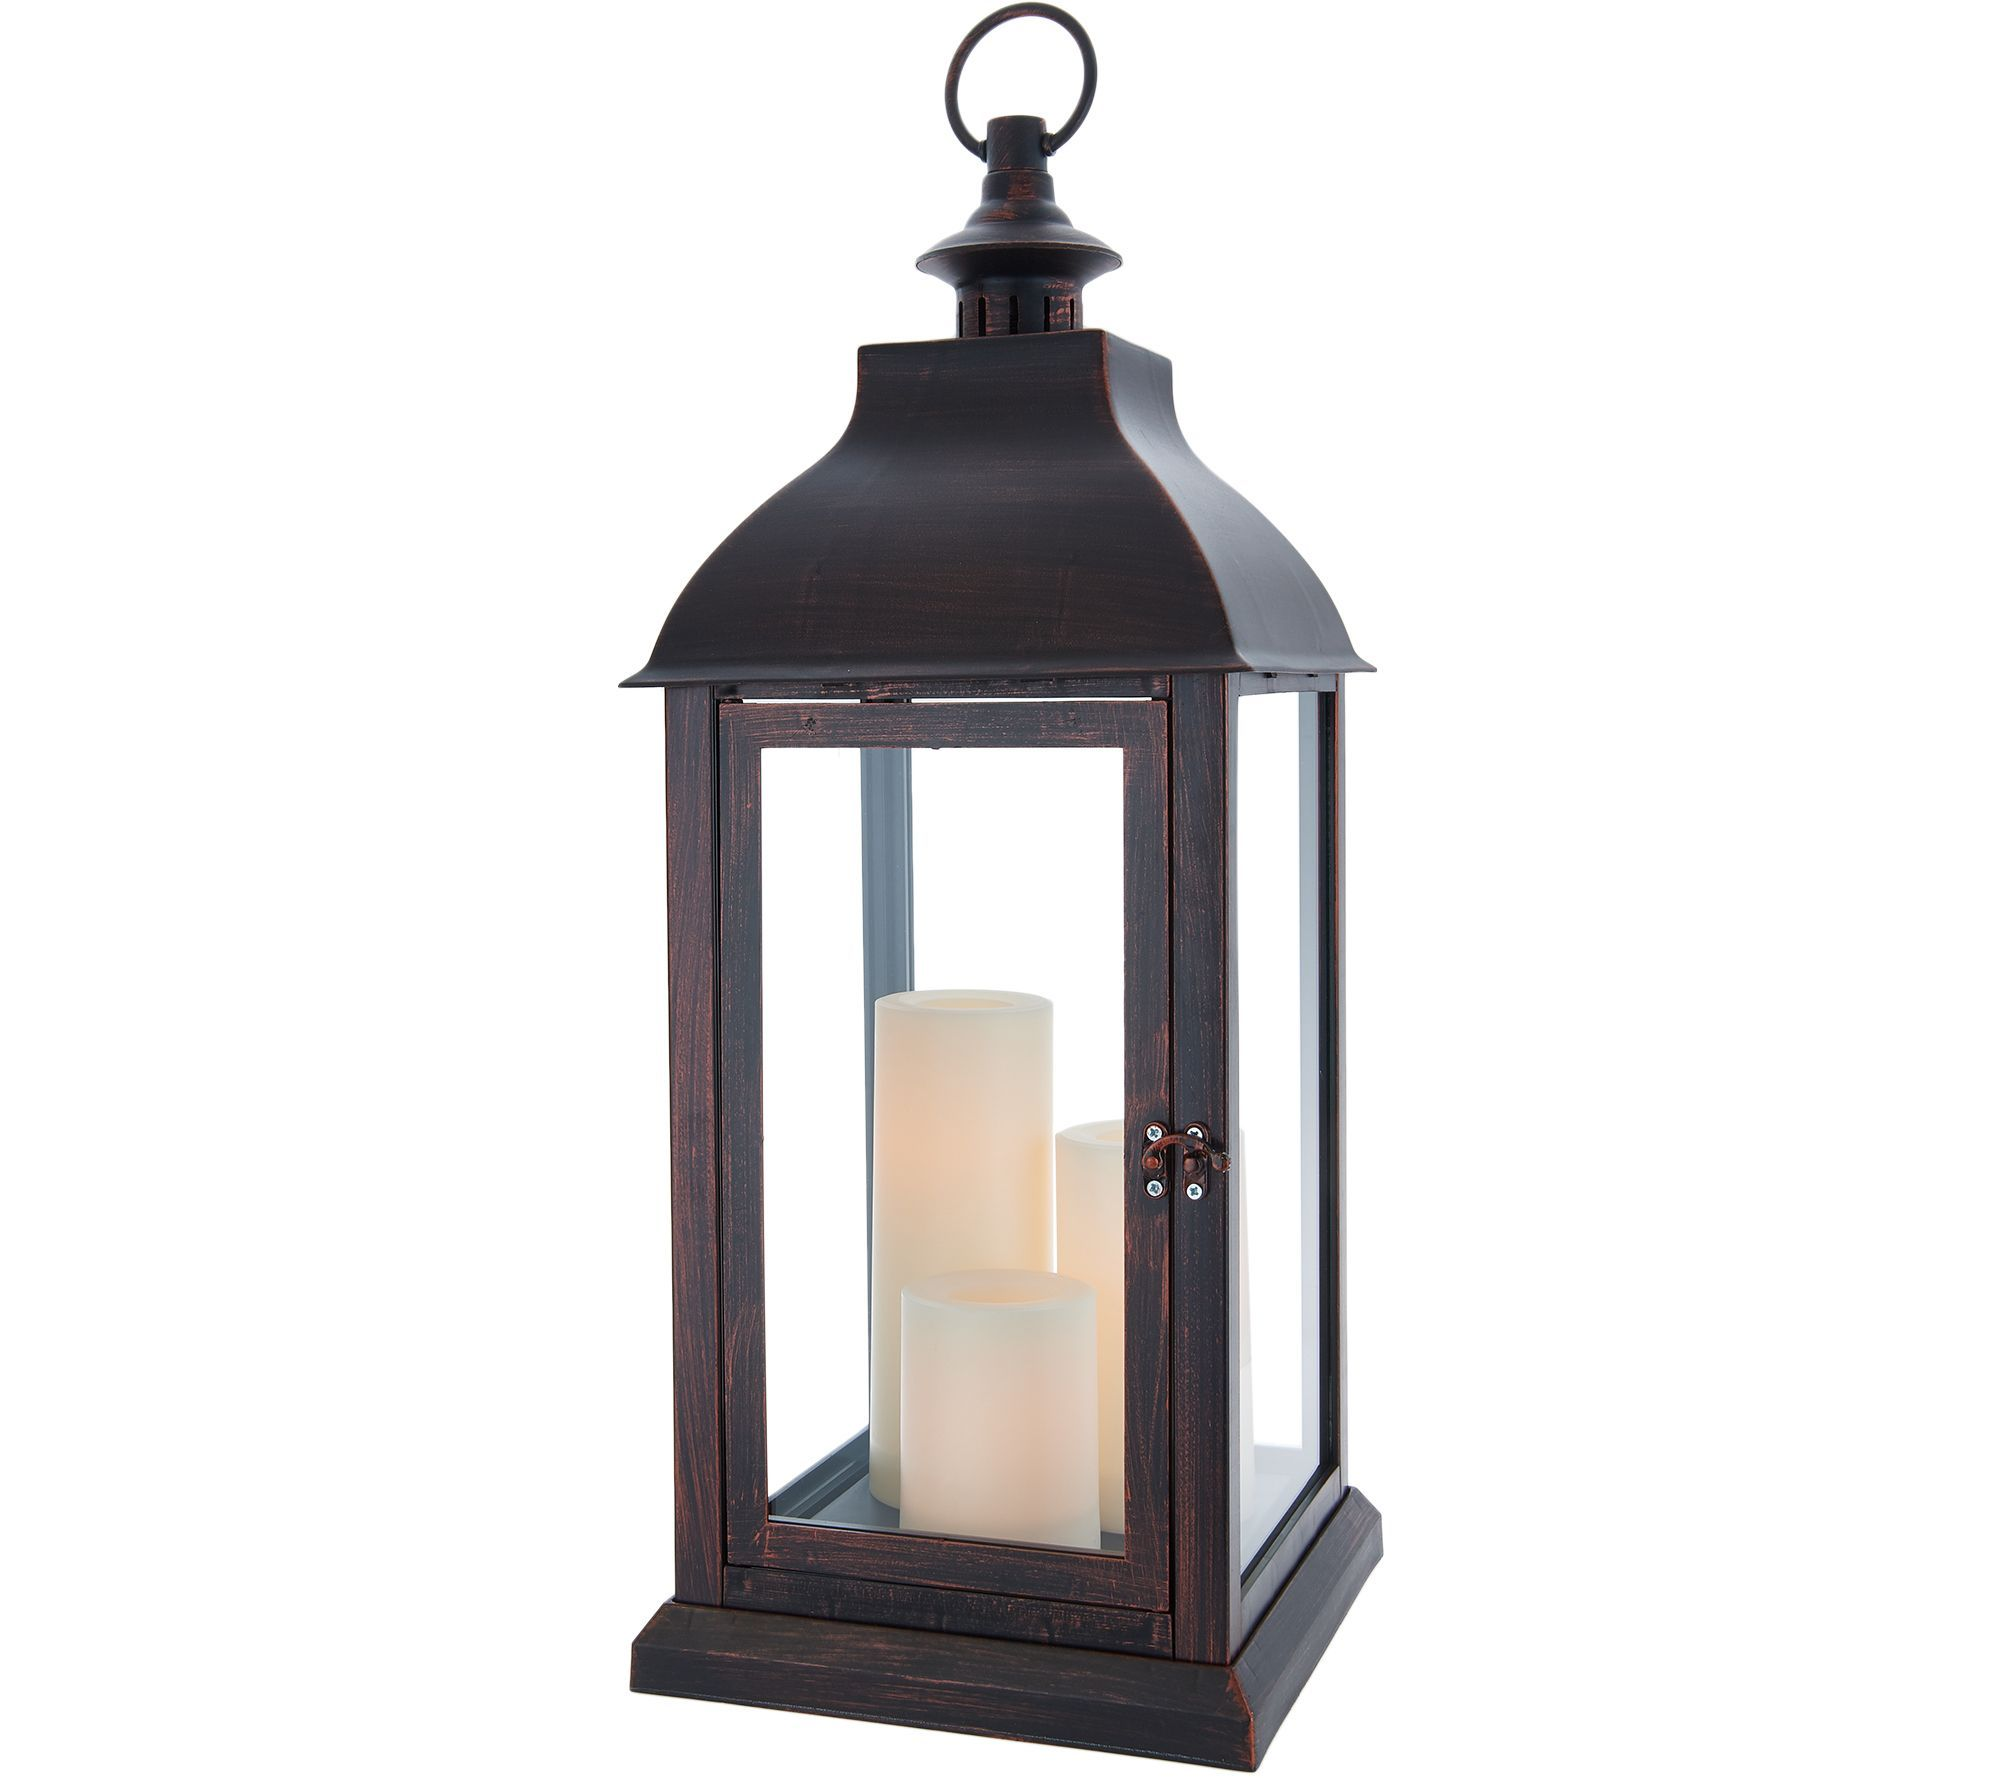 Candle Impressions Large Indoor Outdoor Lantern With 3 Candles Page 1 Qvc Com Candle Impressions Outdoor Lanterns Large Outdoor Lanterns